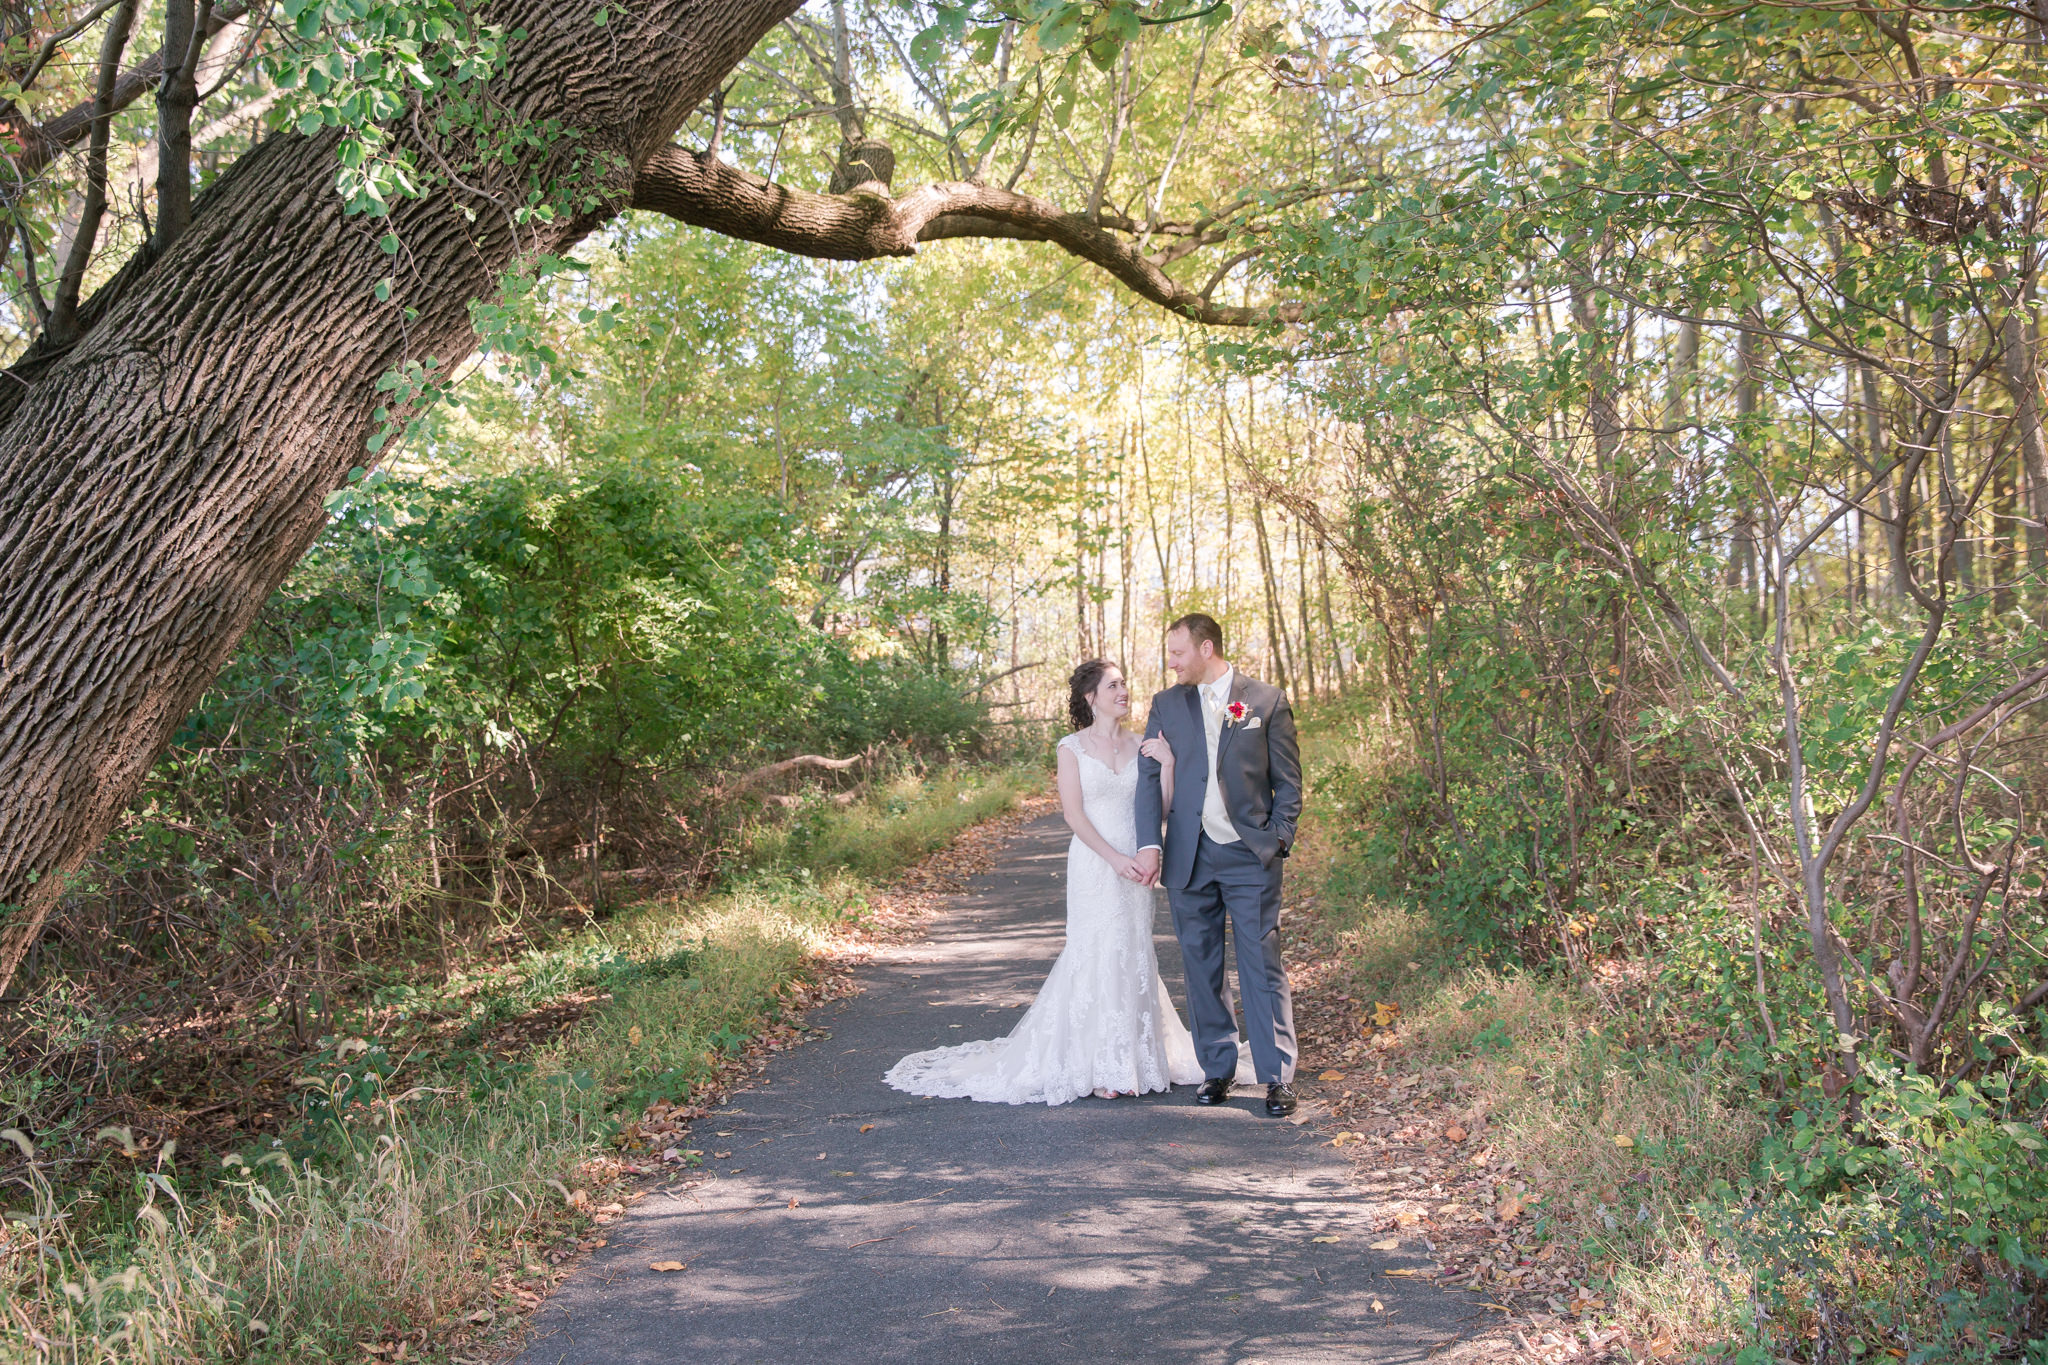 I love when venues take you around to different spots. Then when they leave you, you find your own little wonderland. The light through these trees is amazing. Of course Jaclyn & Mark were beautiful as well!